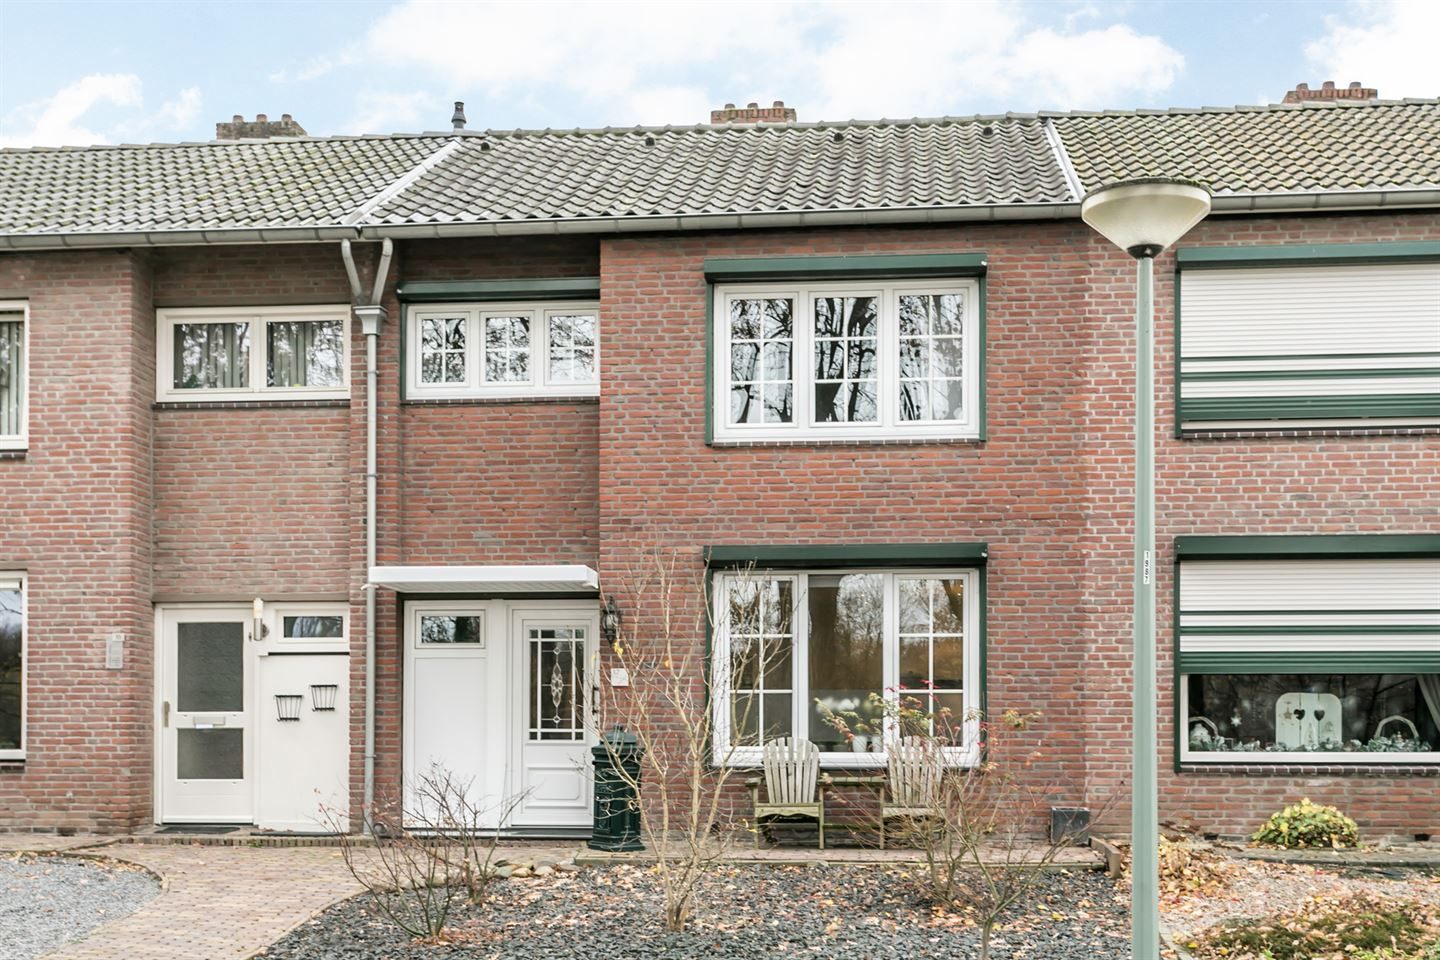 Verkocht peerdendries 37 6442 as brunssum funda for Wat kost een vlizotrap